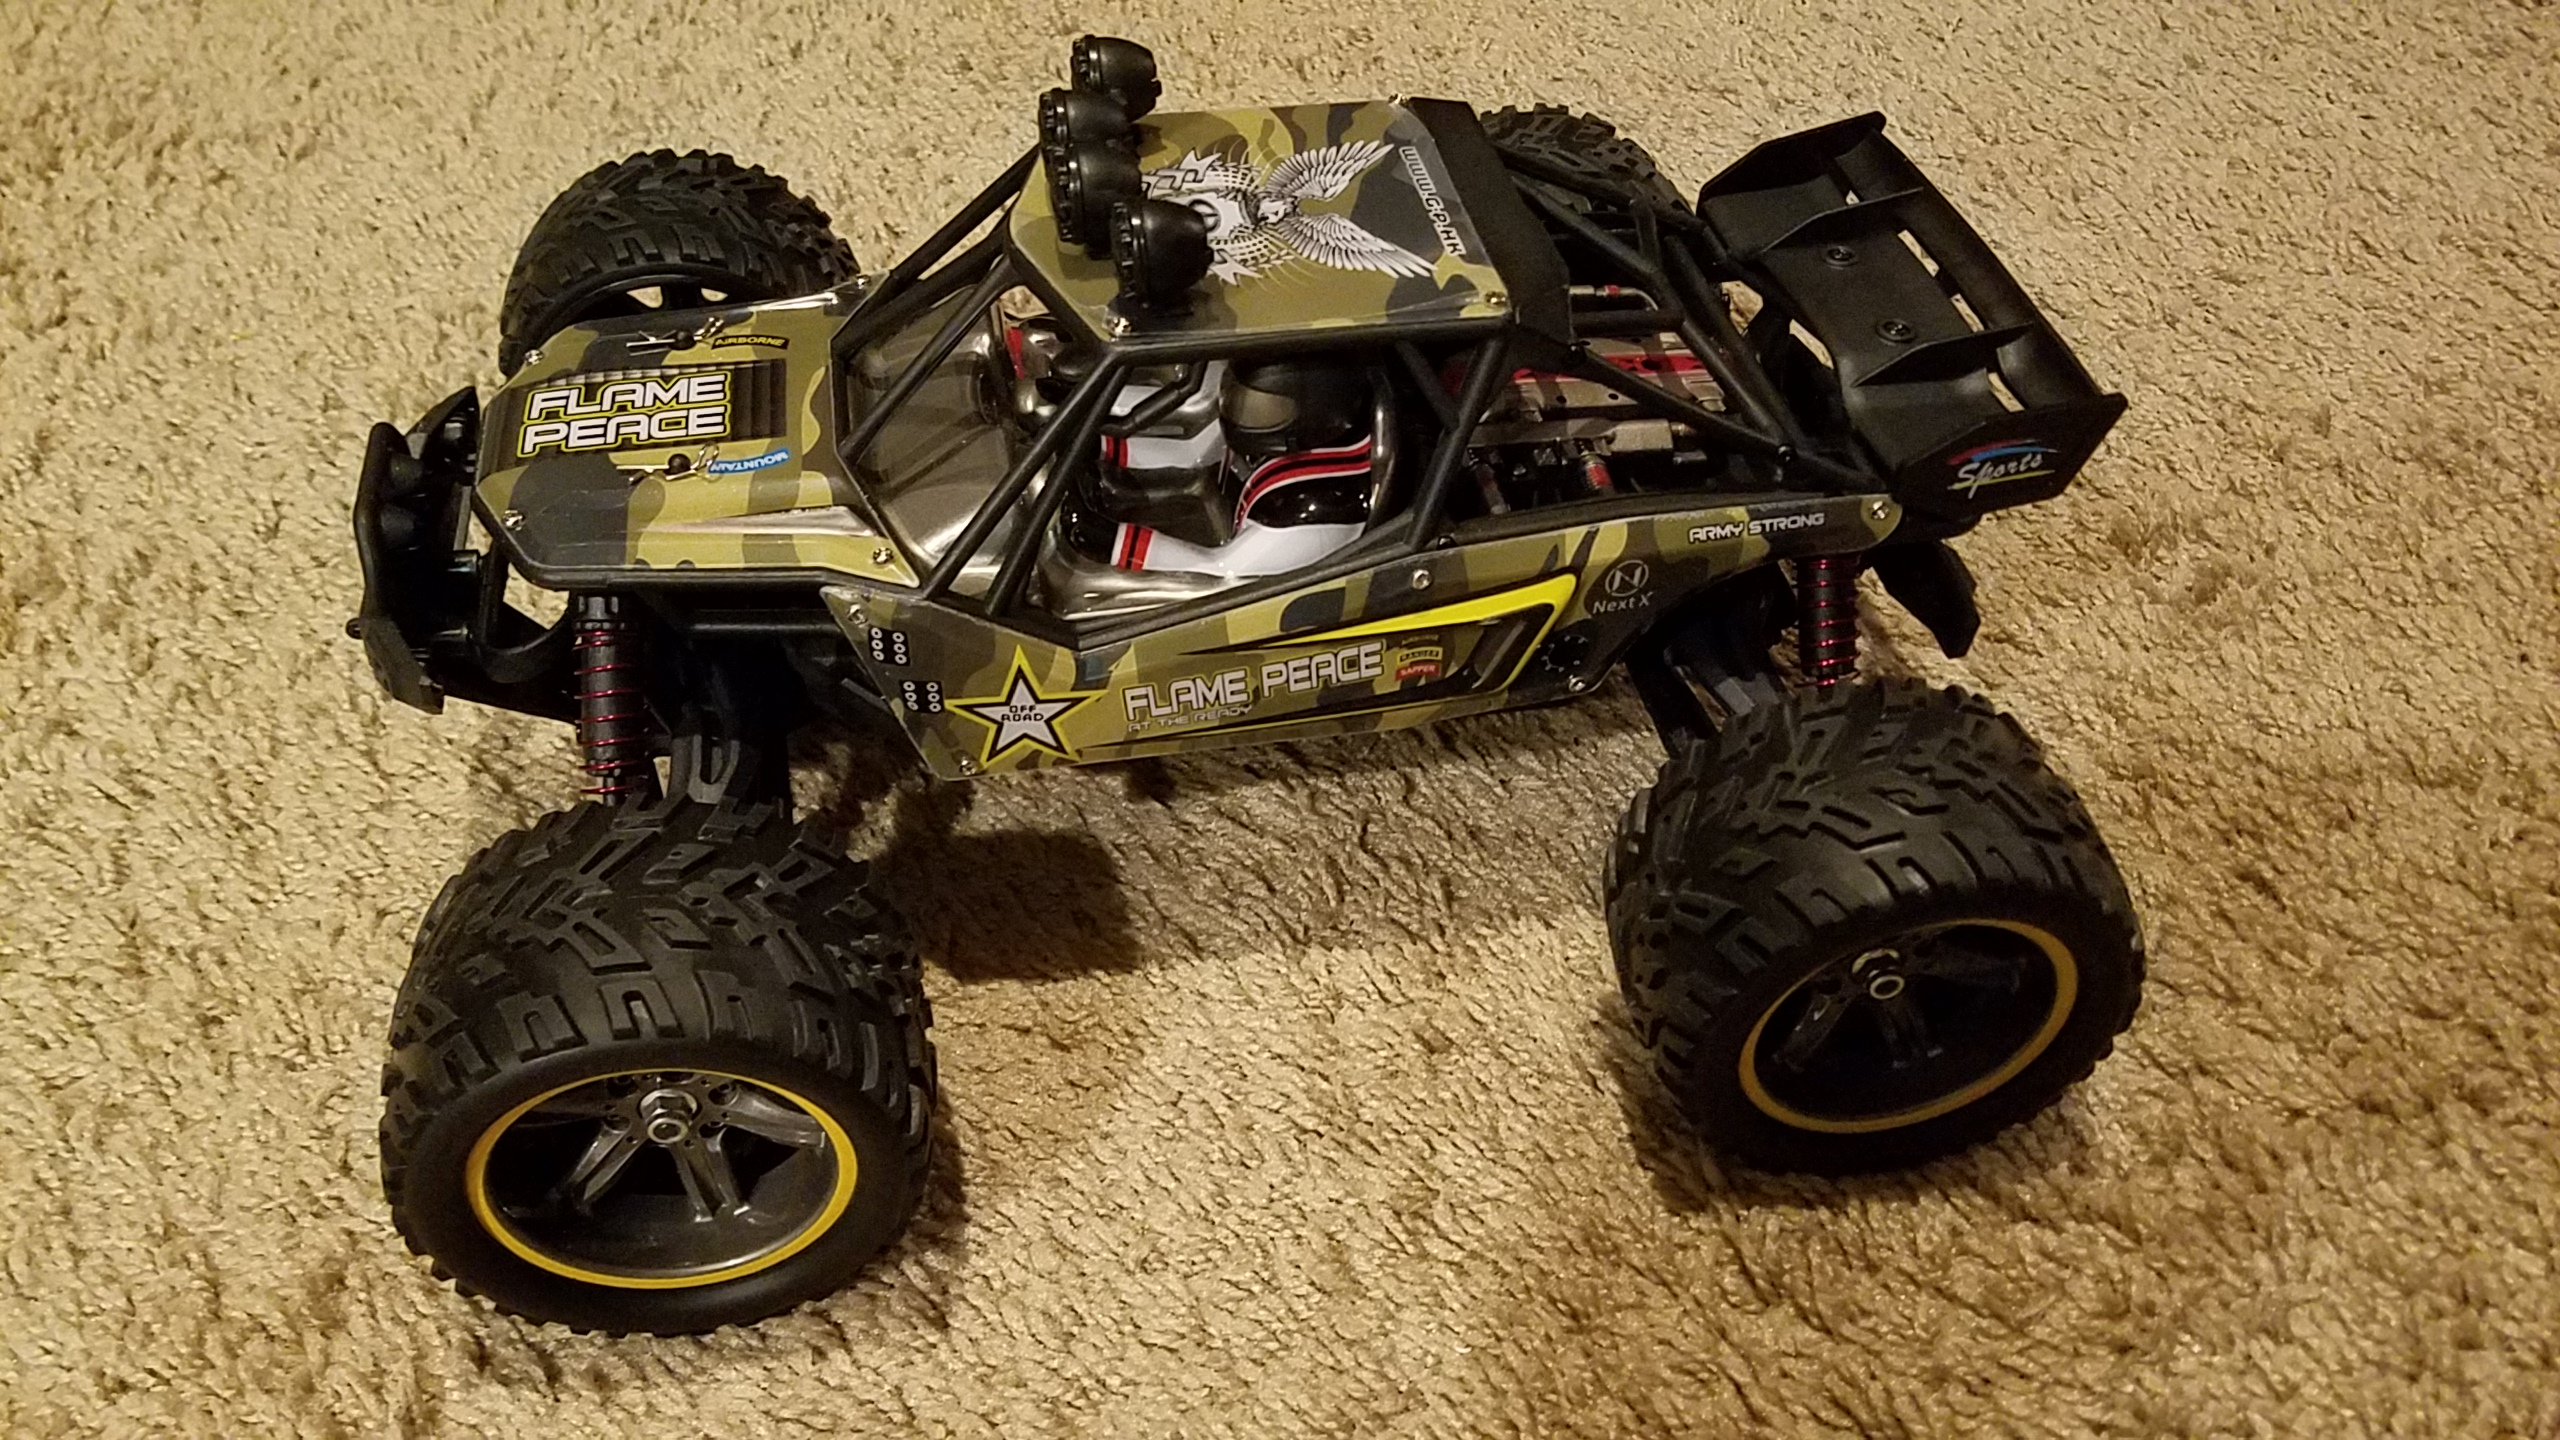 One of the best RC Cars I have bought so far!